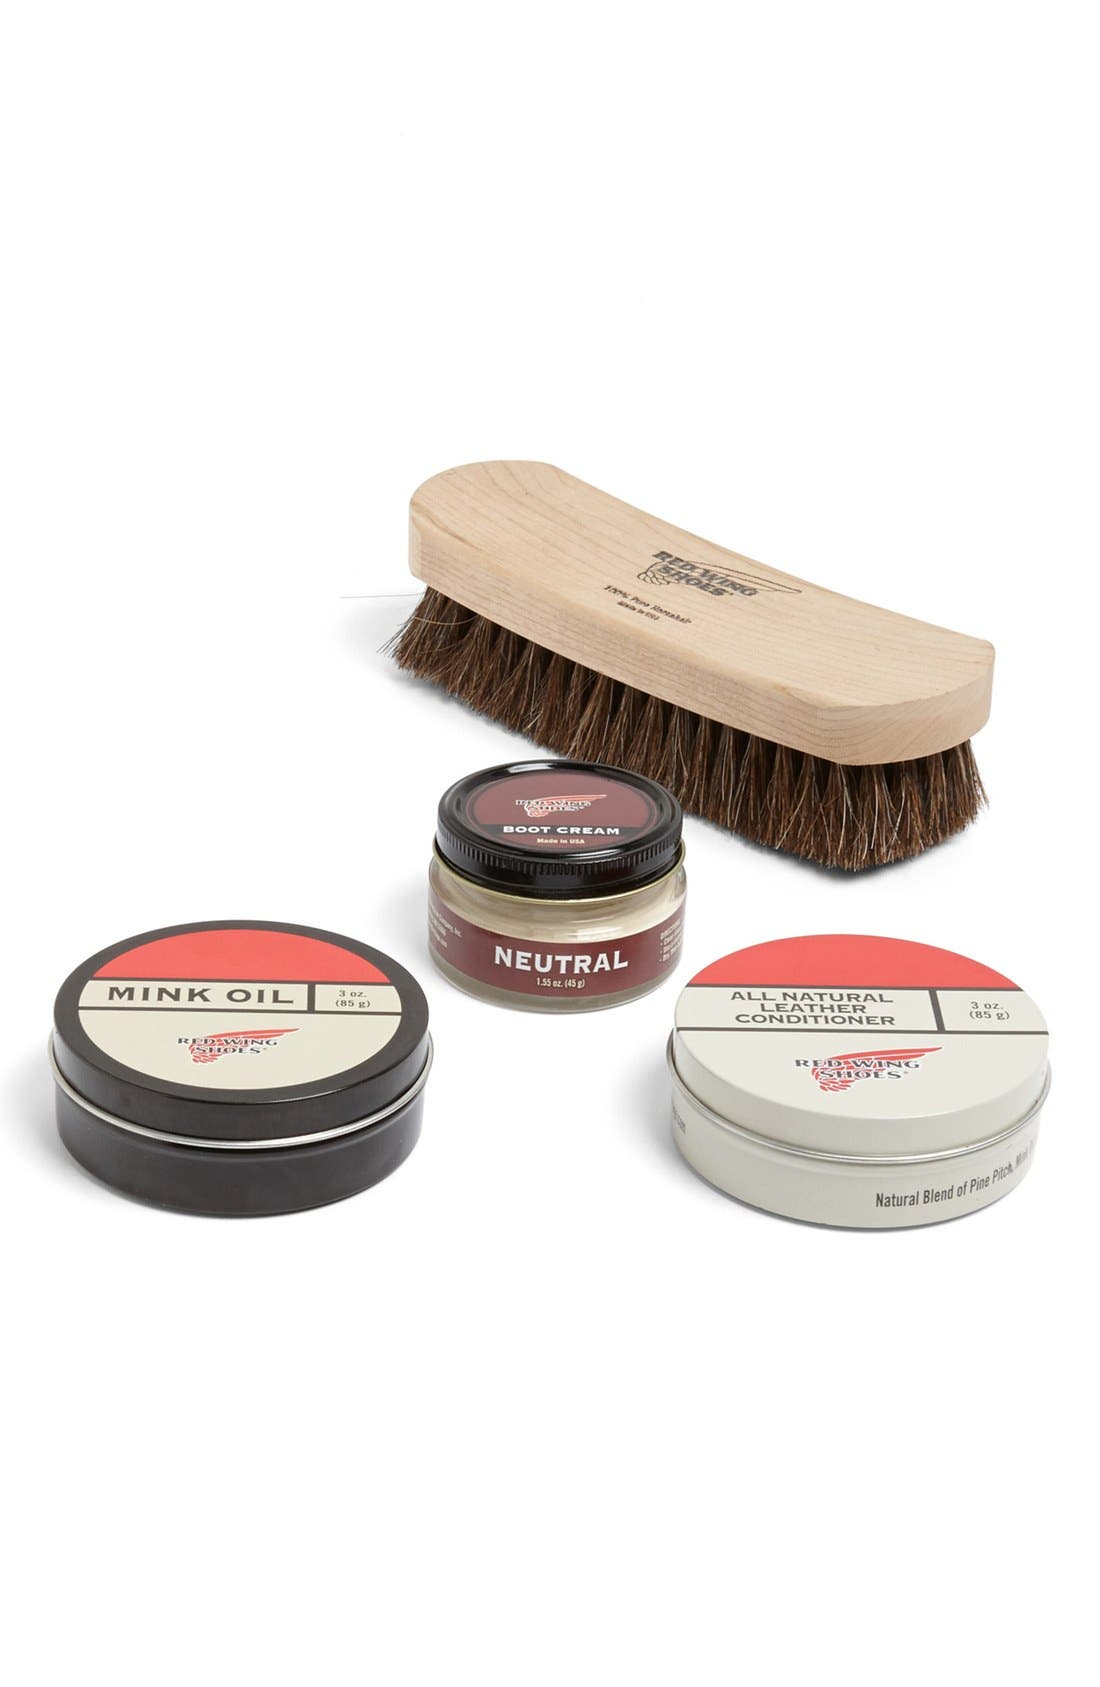 RED WING,                             Leather Shoe Care Set,                             Main thumbnail 1, color,                             NONE